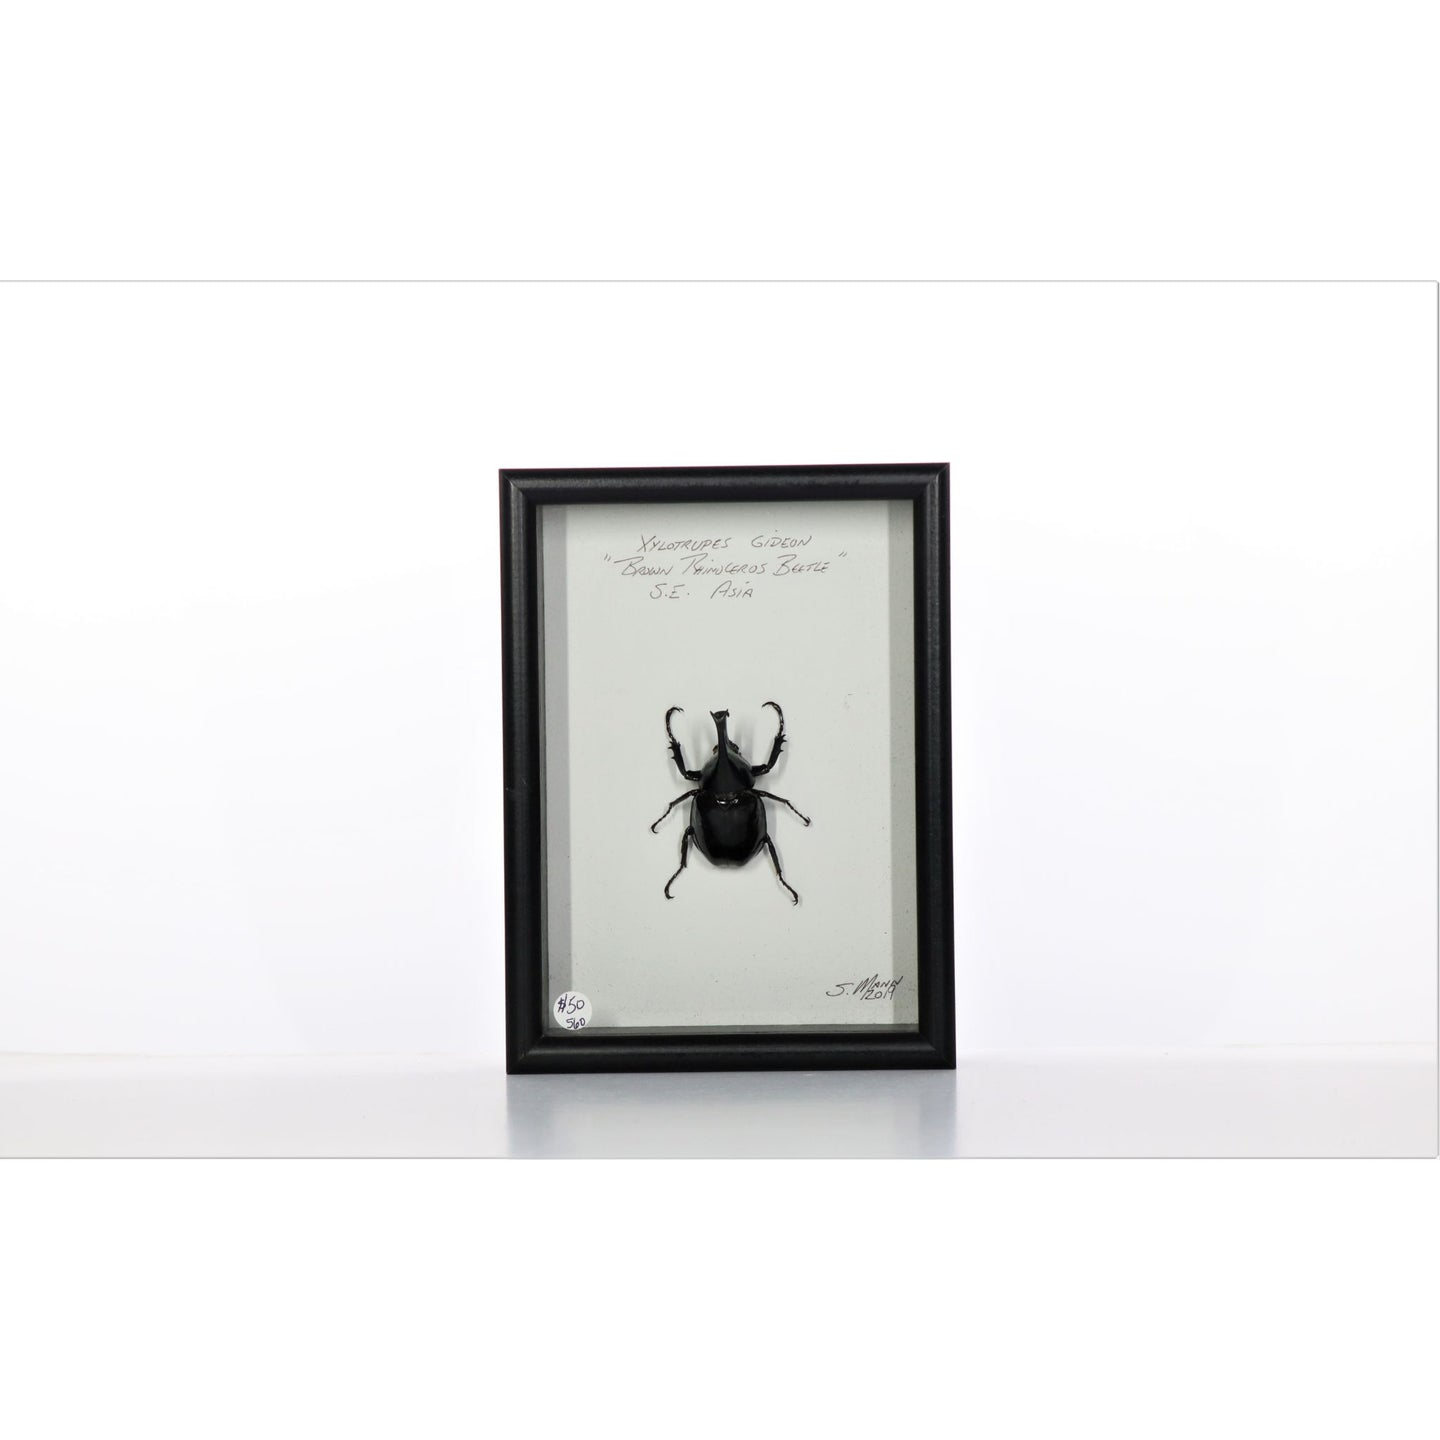 Brown Rhino Beetle 5x7 Black #560 Framed Art - Insecta Etcetera